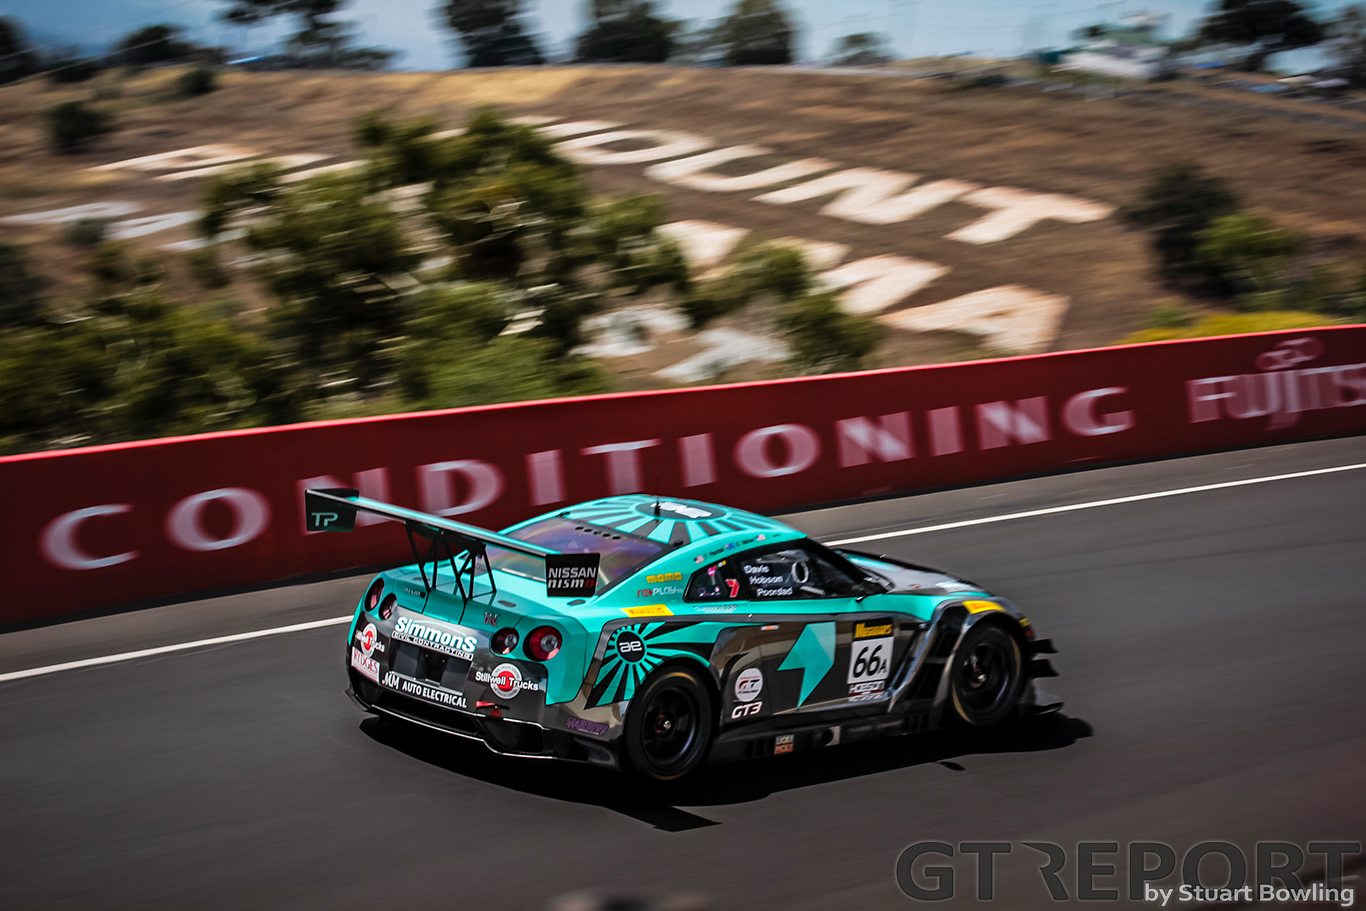 Tech Analysis Nissan Gt R Nismo Gt3 Report Go Back Pics For Electric Circuit Symbols During The 2017 Liqui Moly Bathurst 12 Hour I Was Given Privilege Of Being Able To Visit Garage Small Privateer Team Hobson Motorsport And Get A